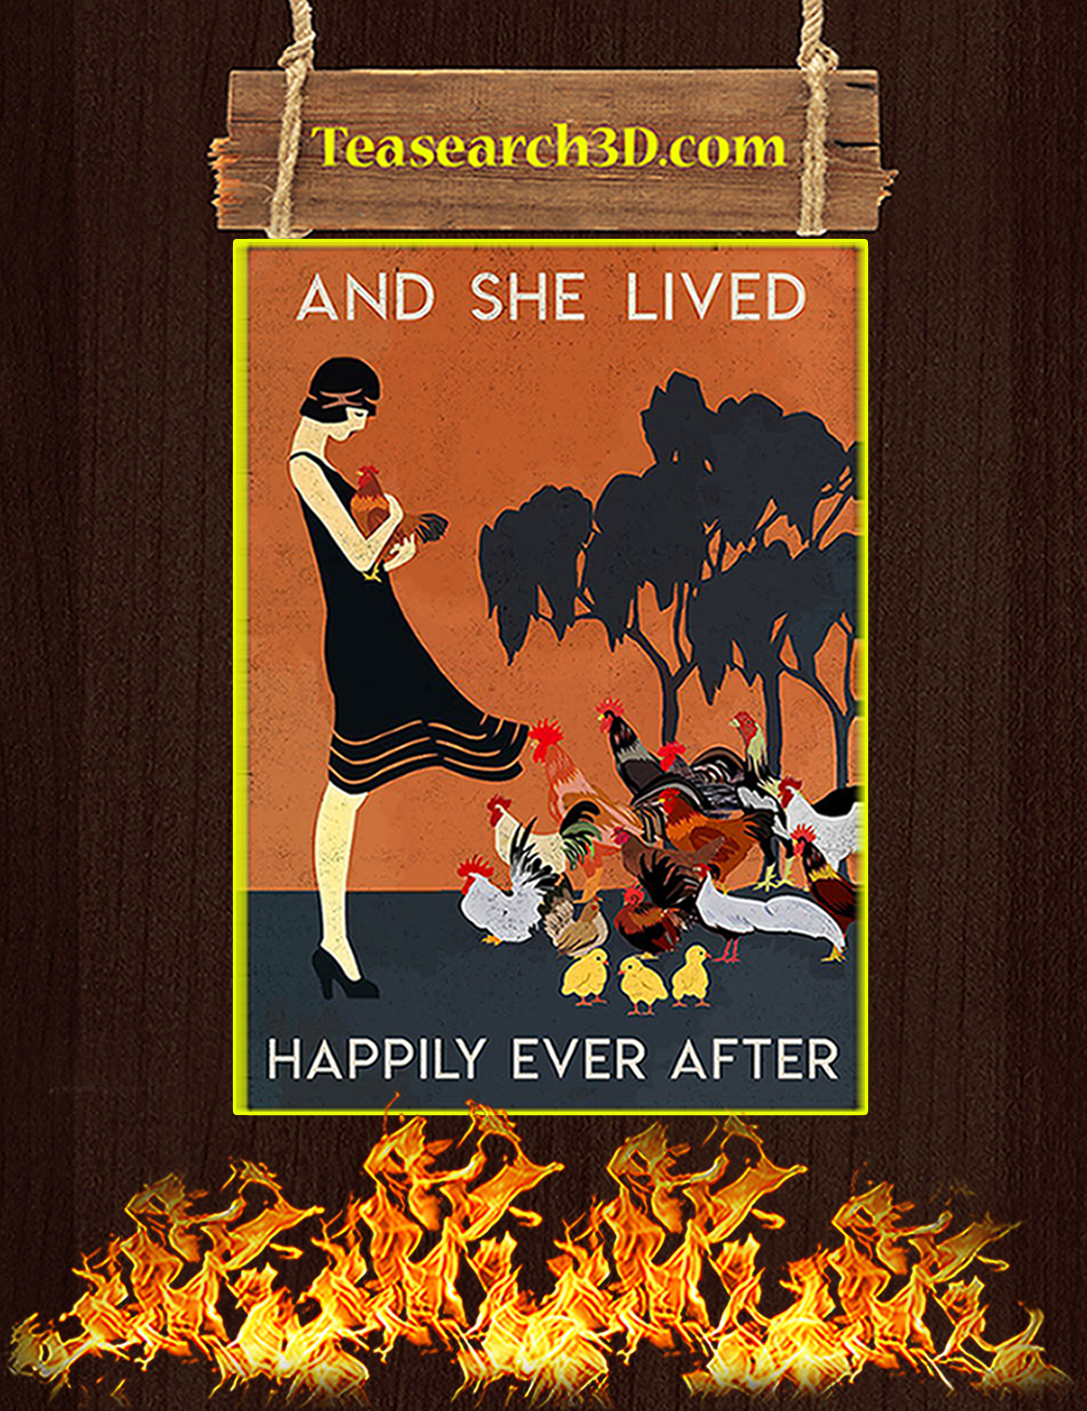 Chicken and she lived happily ever after poster A2